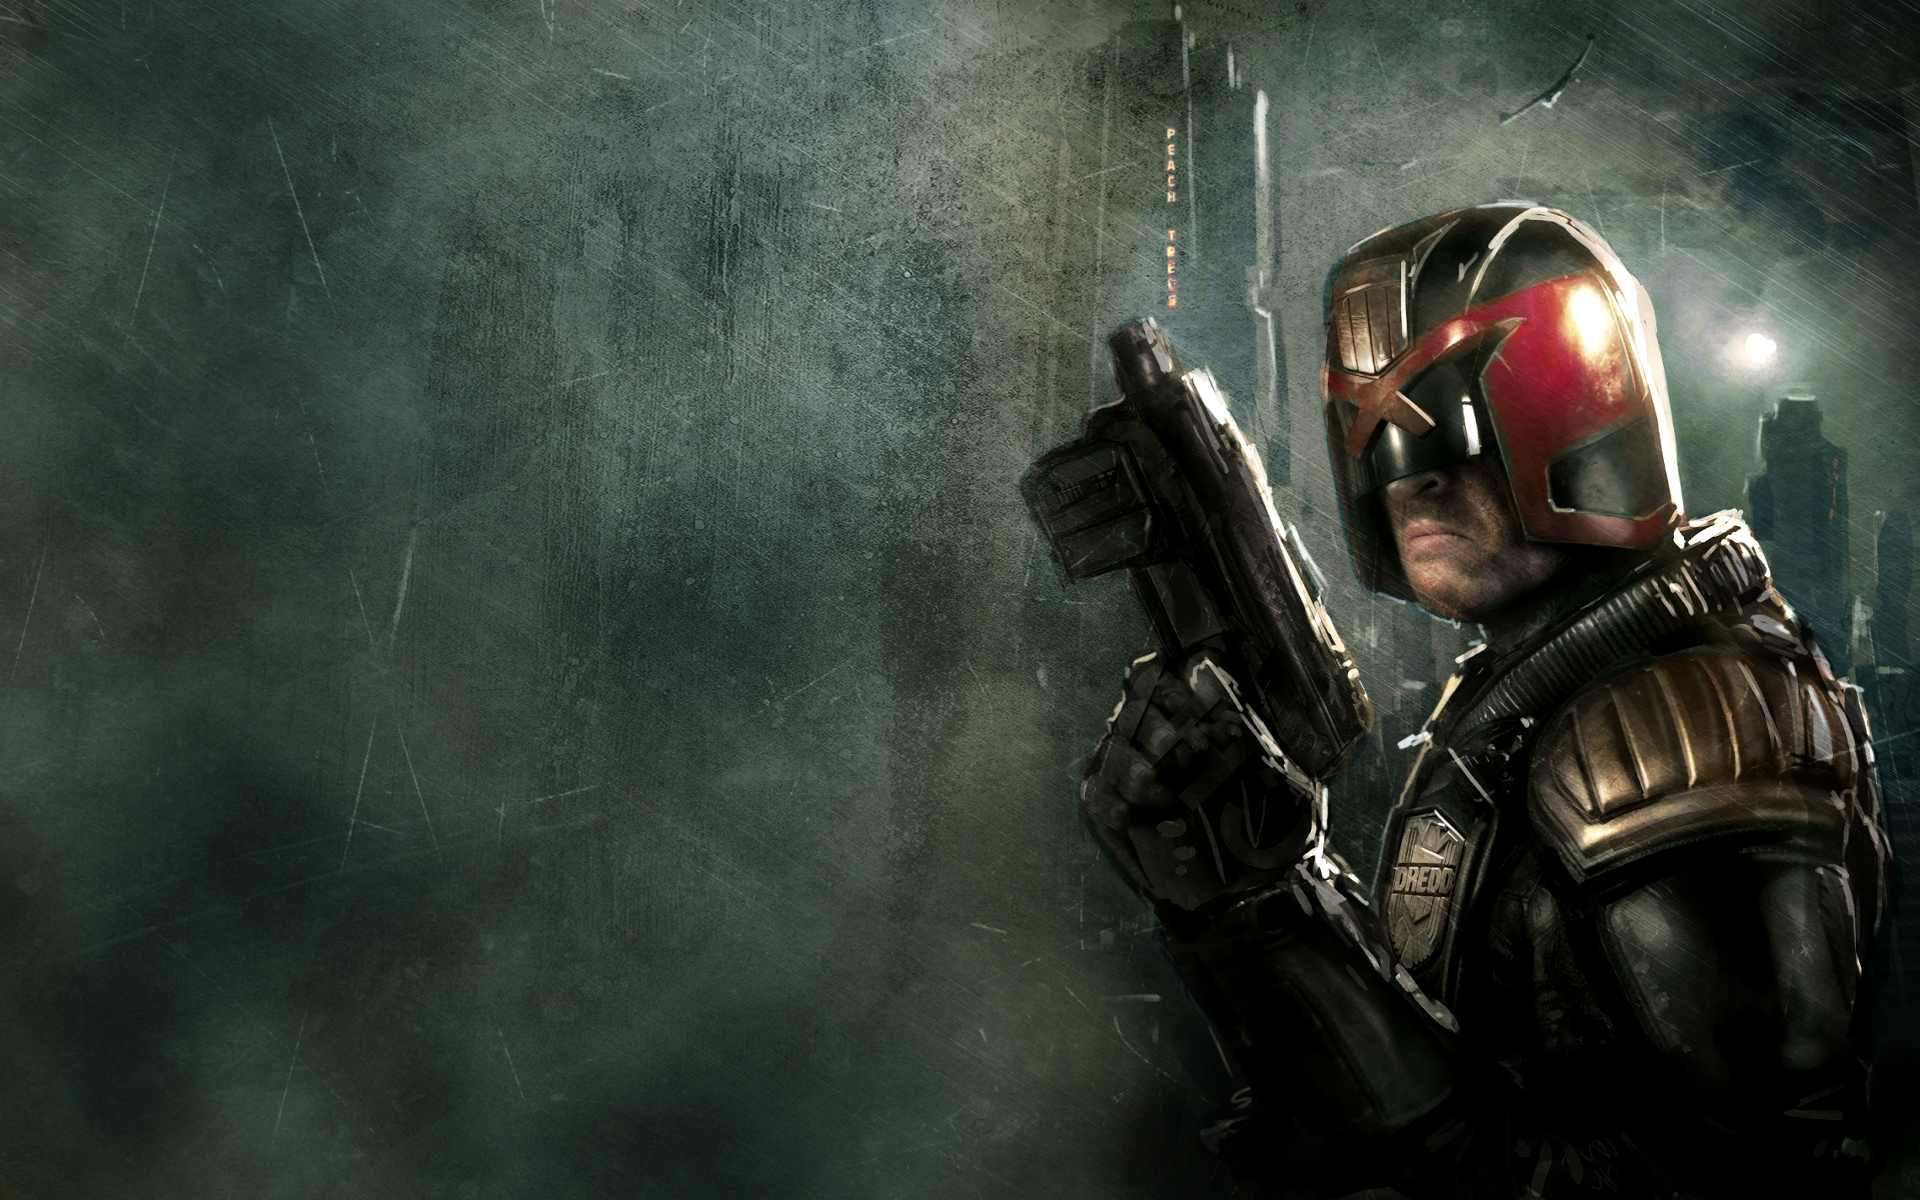 Judge Dredd Wallpaper